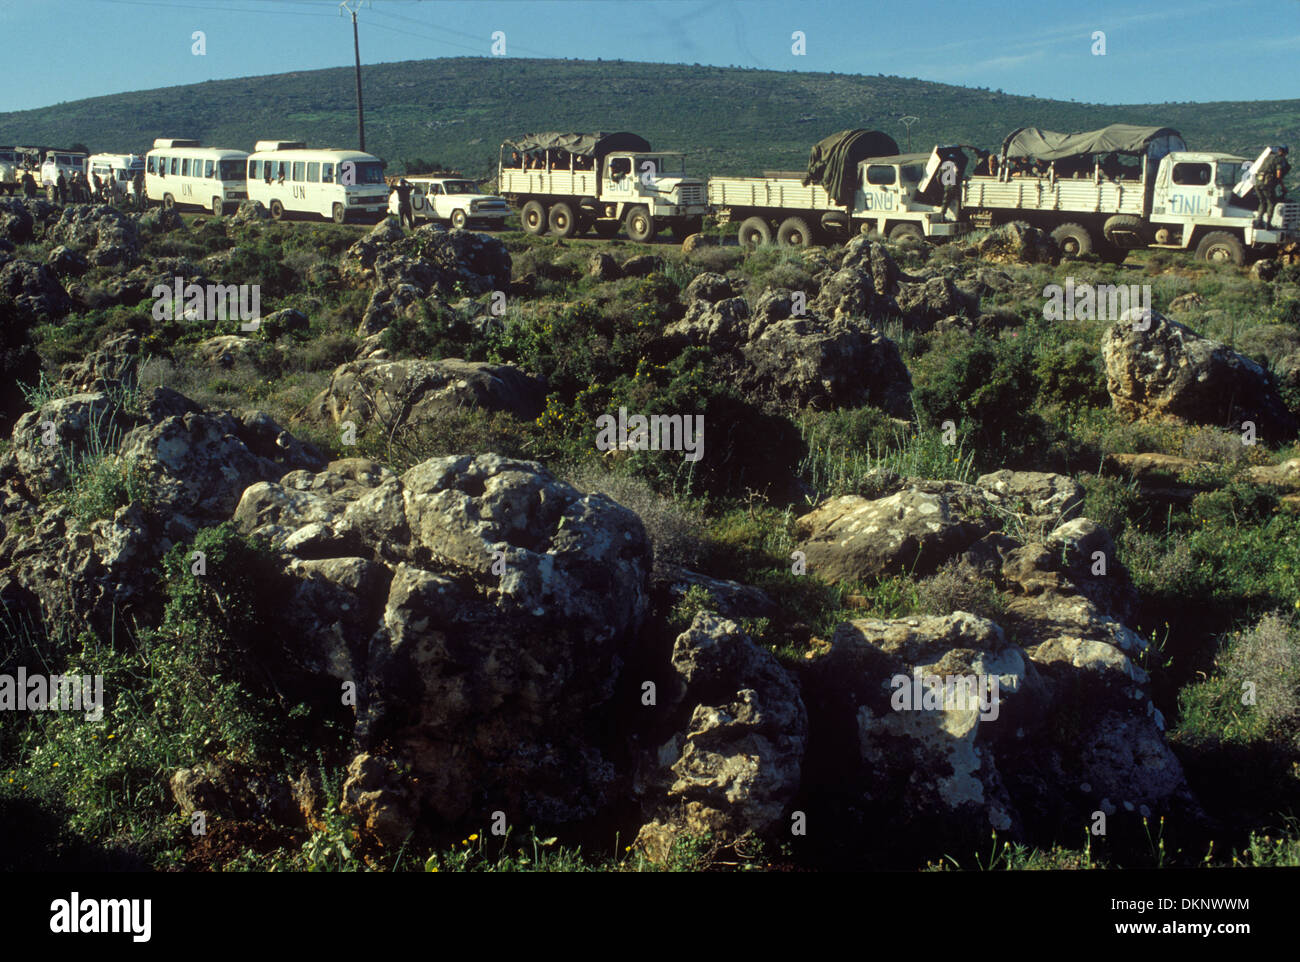 Irish UN, United Nations troops pull out of southern Lebanon 1980. HOMER SYKES - Stock Image